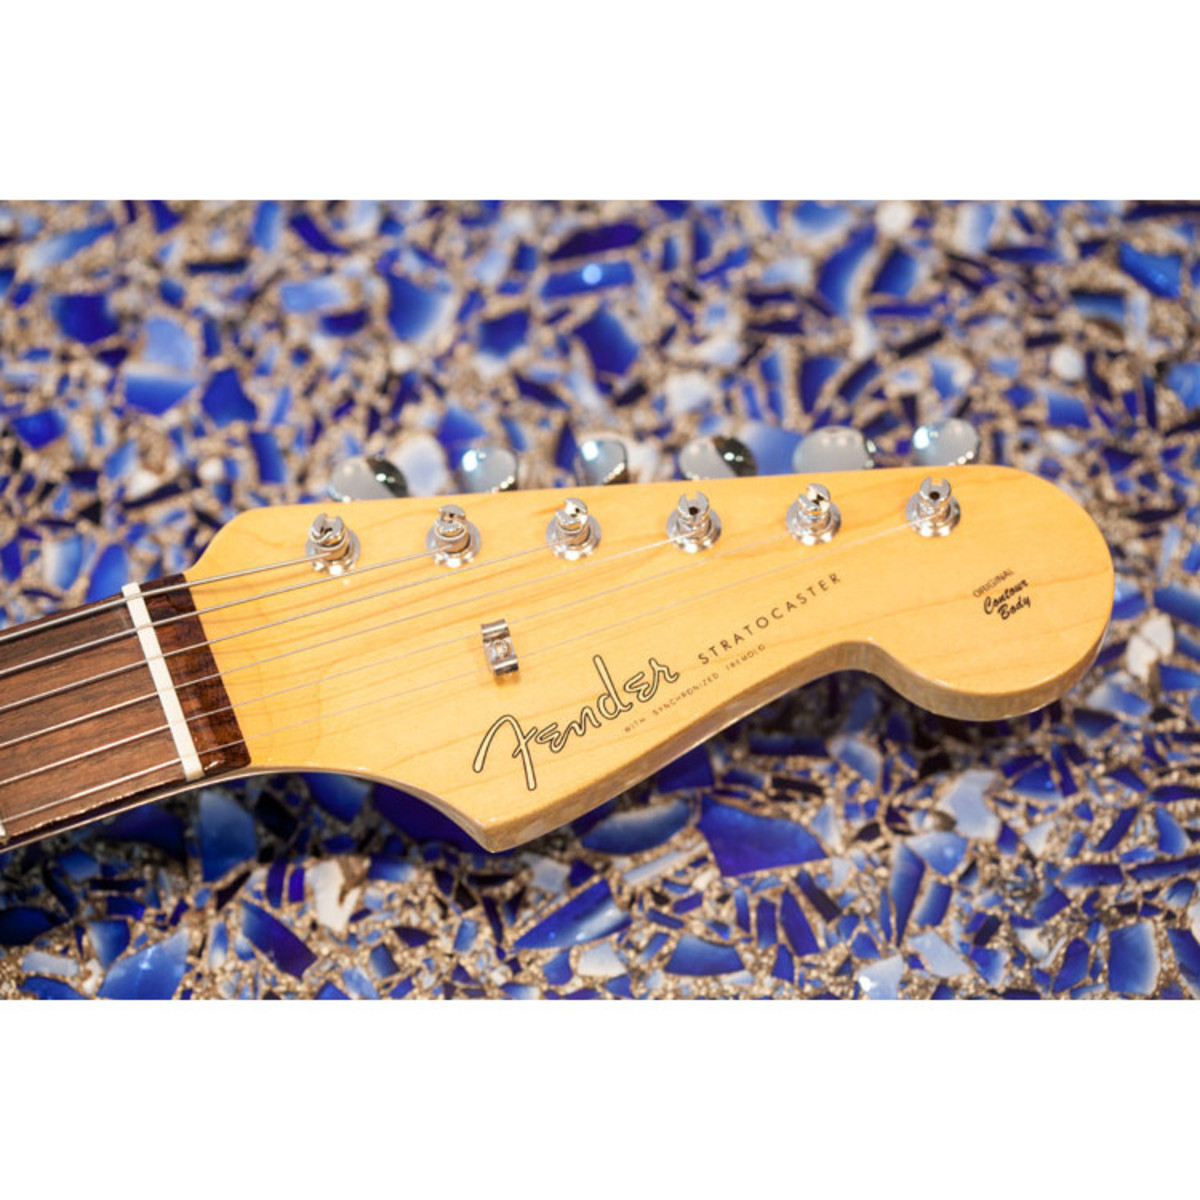 DISC Fender American Vintage 59 Stratocaster, Faded Sonic Blue